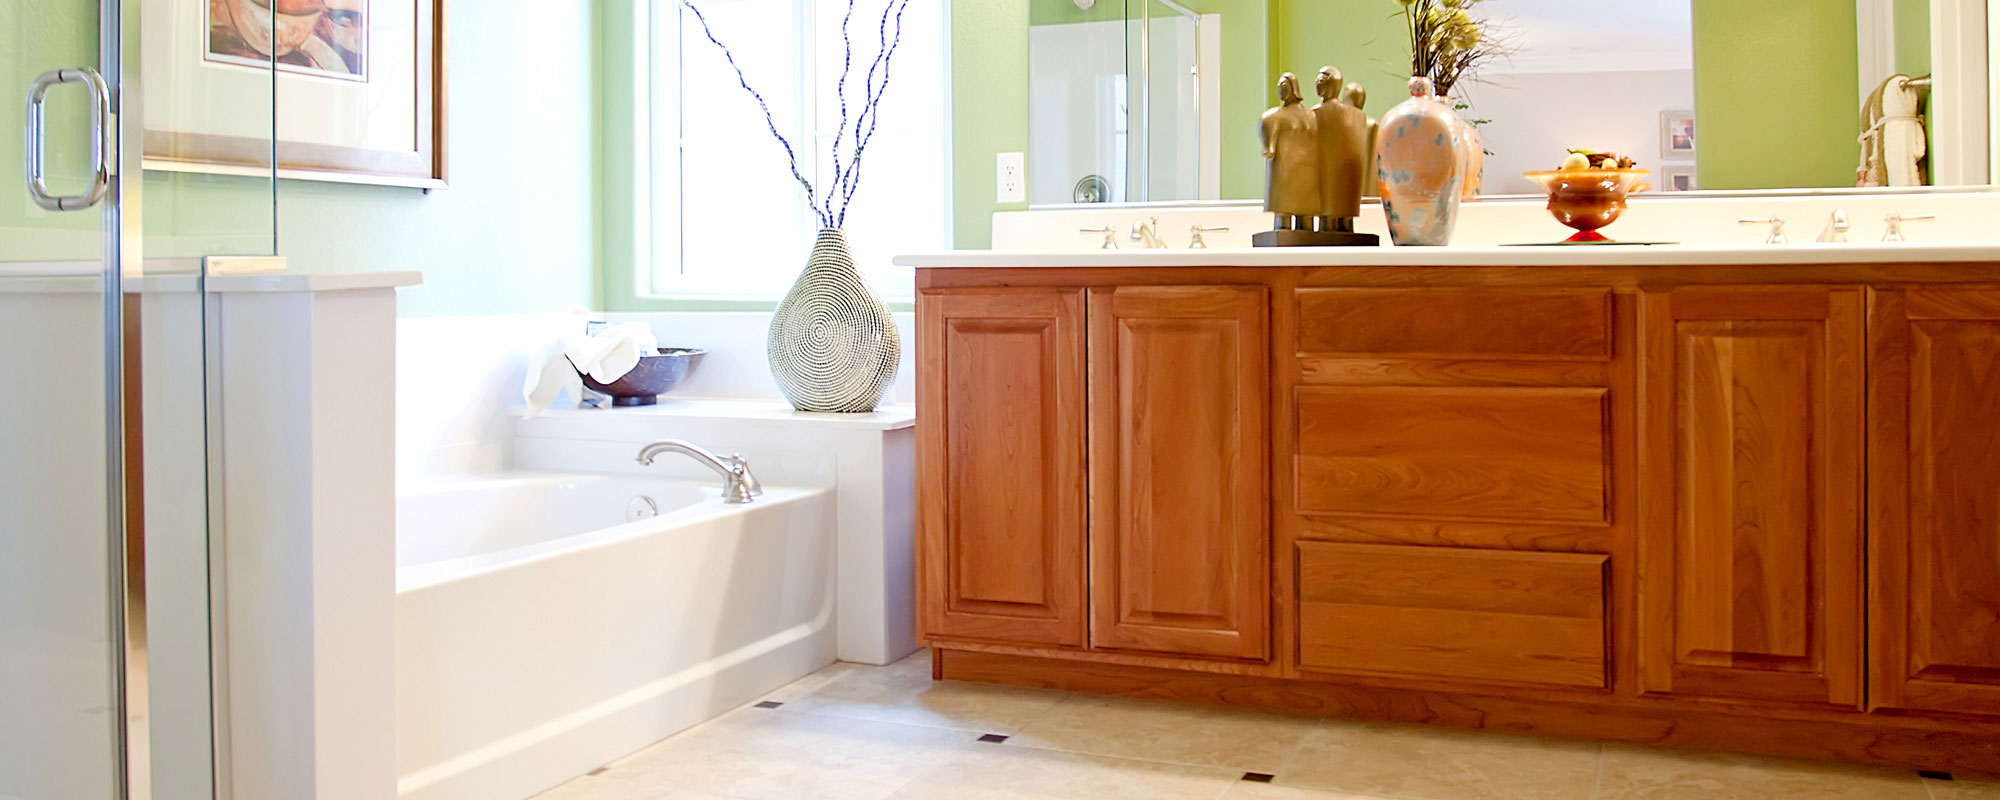 Muskegon Remodeling Kitchen Company Home Contractors